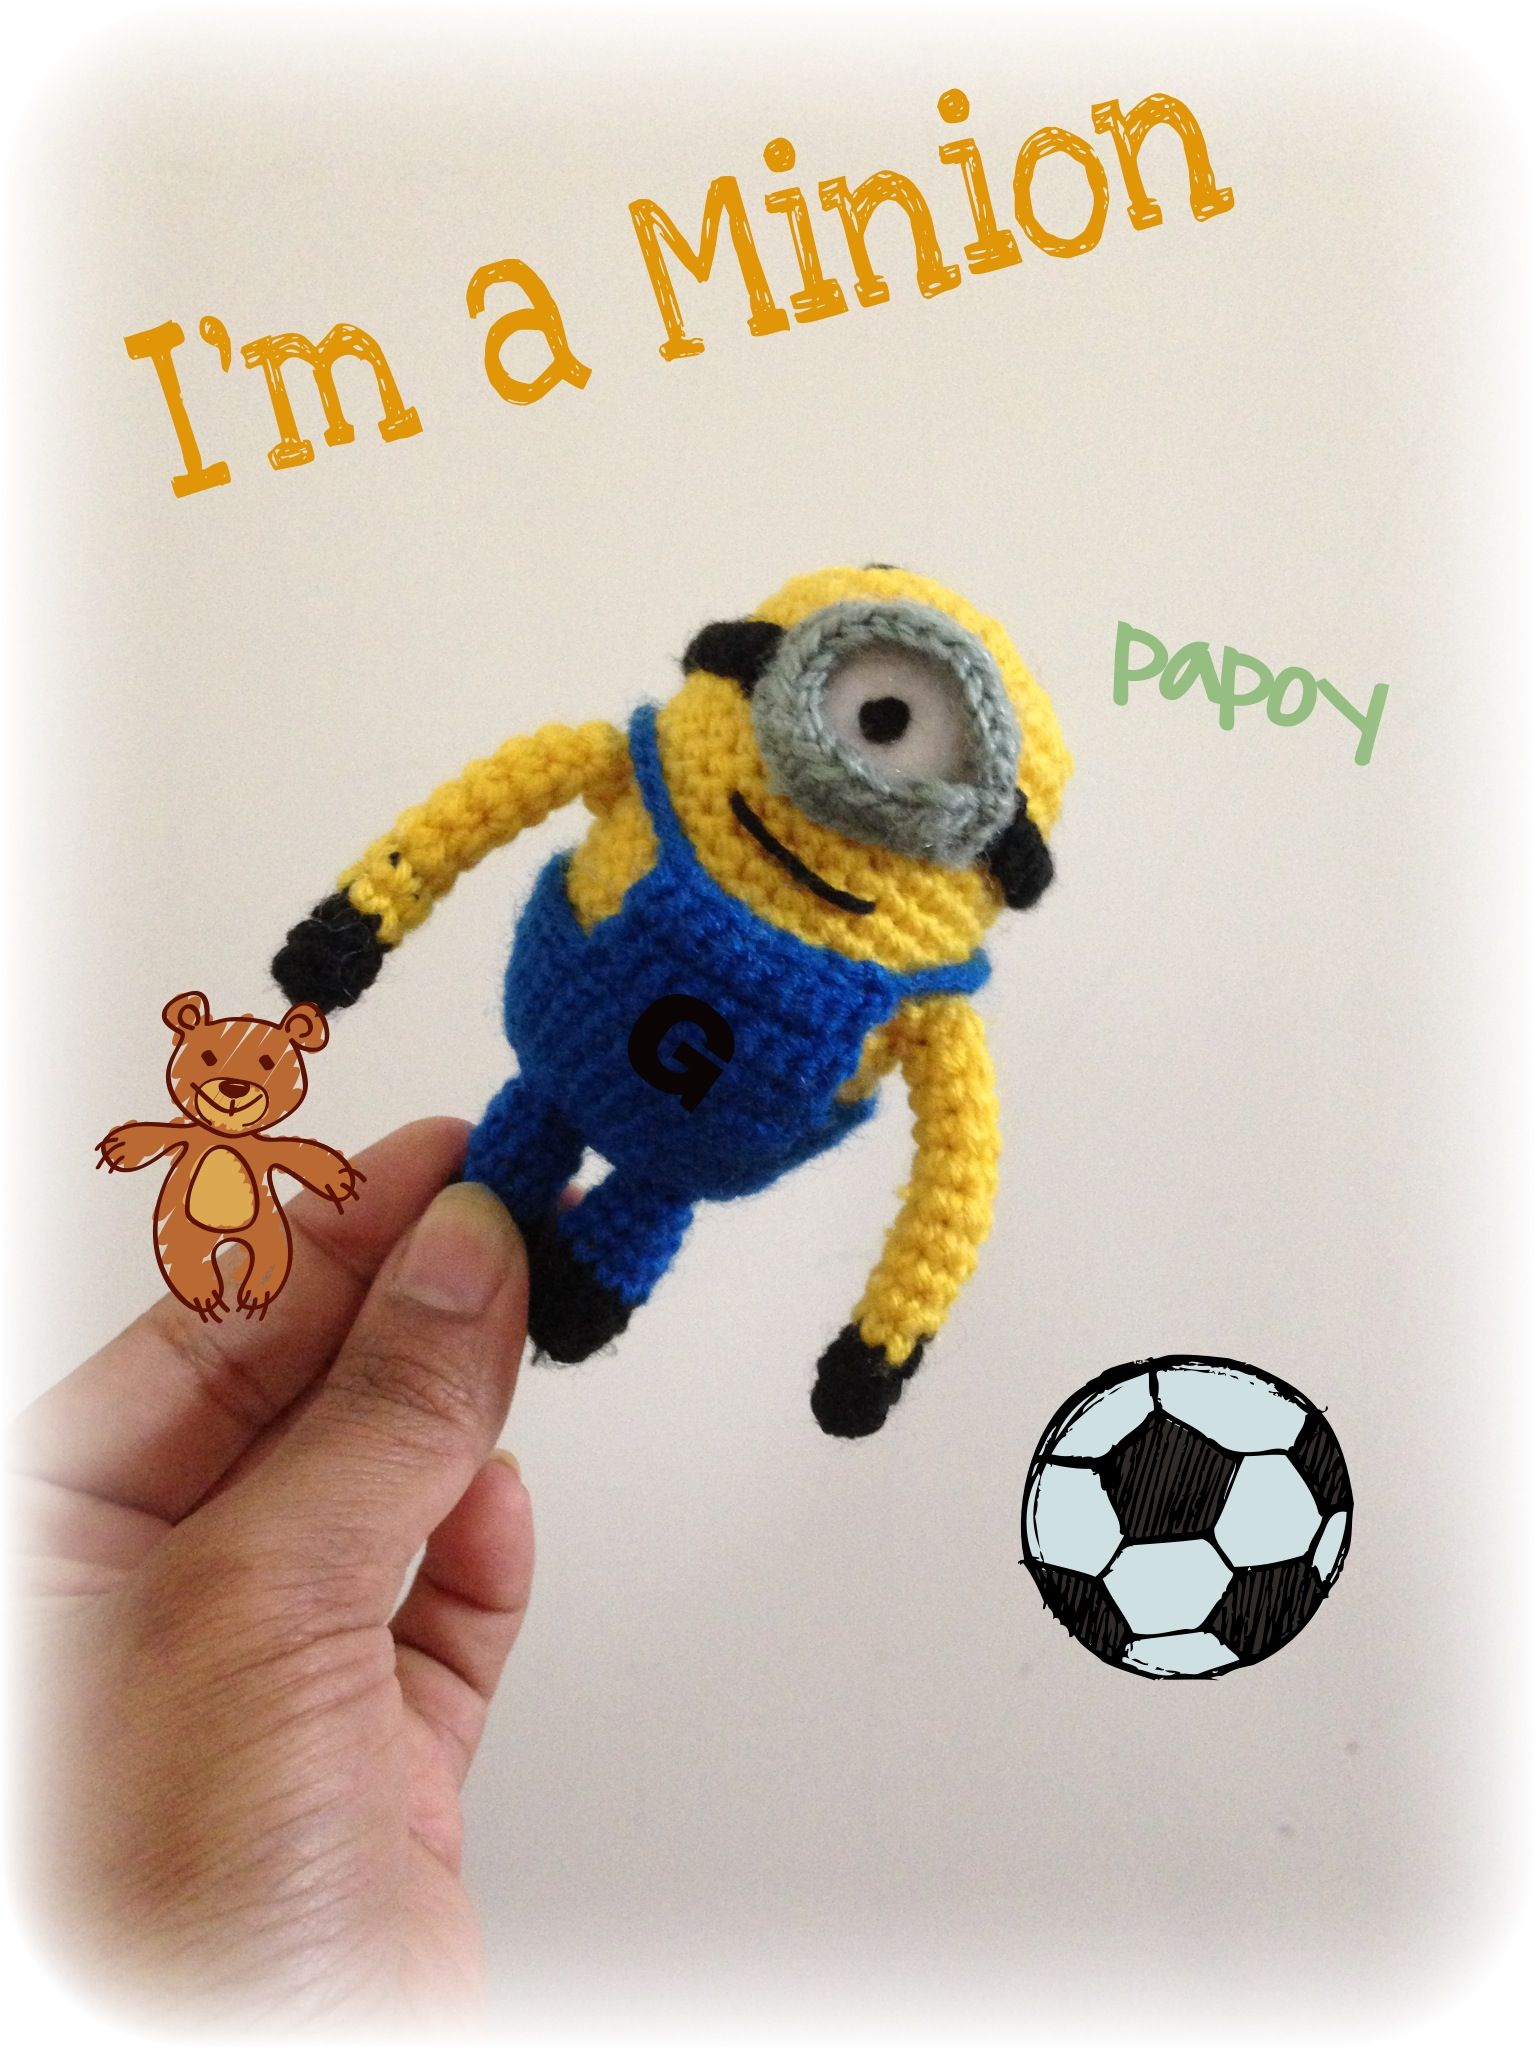 Minion crochet free pattern Thanks to little yarn friends  It helped me creating this cute Lil one